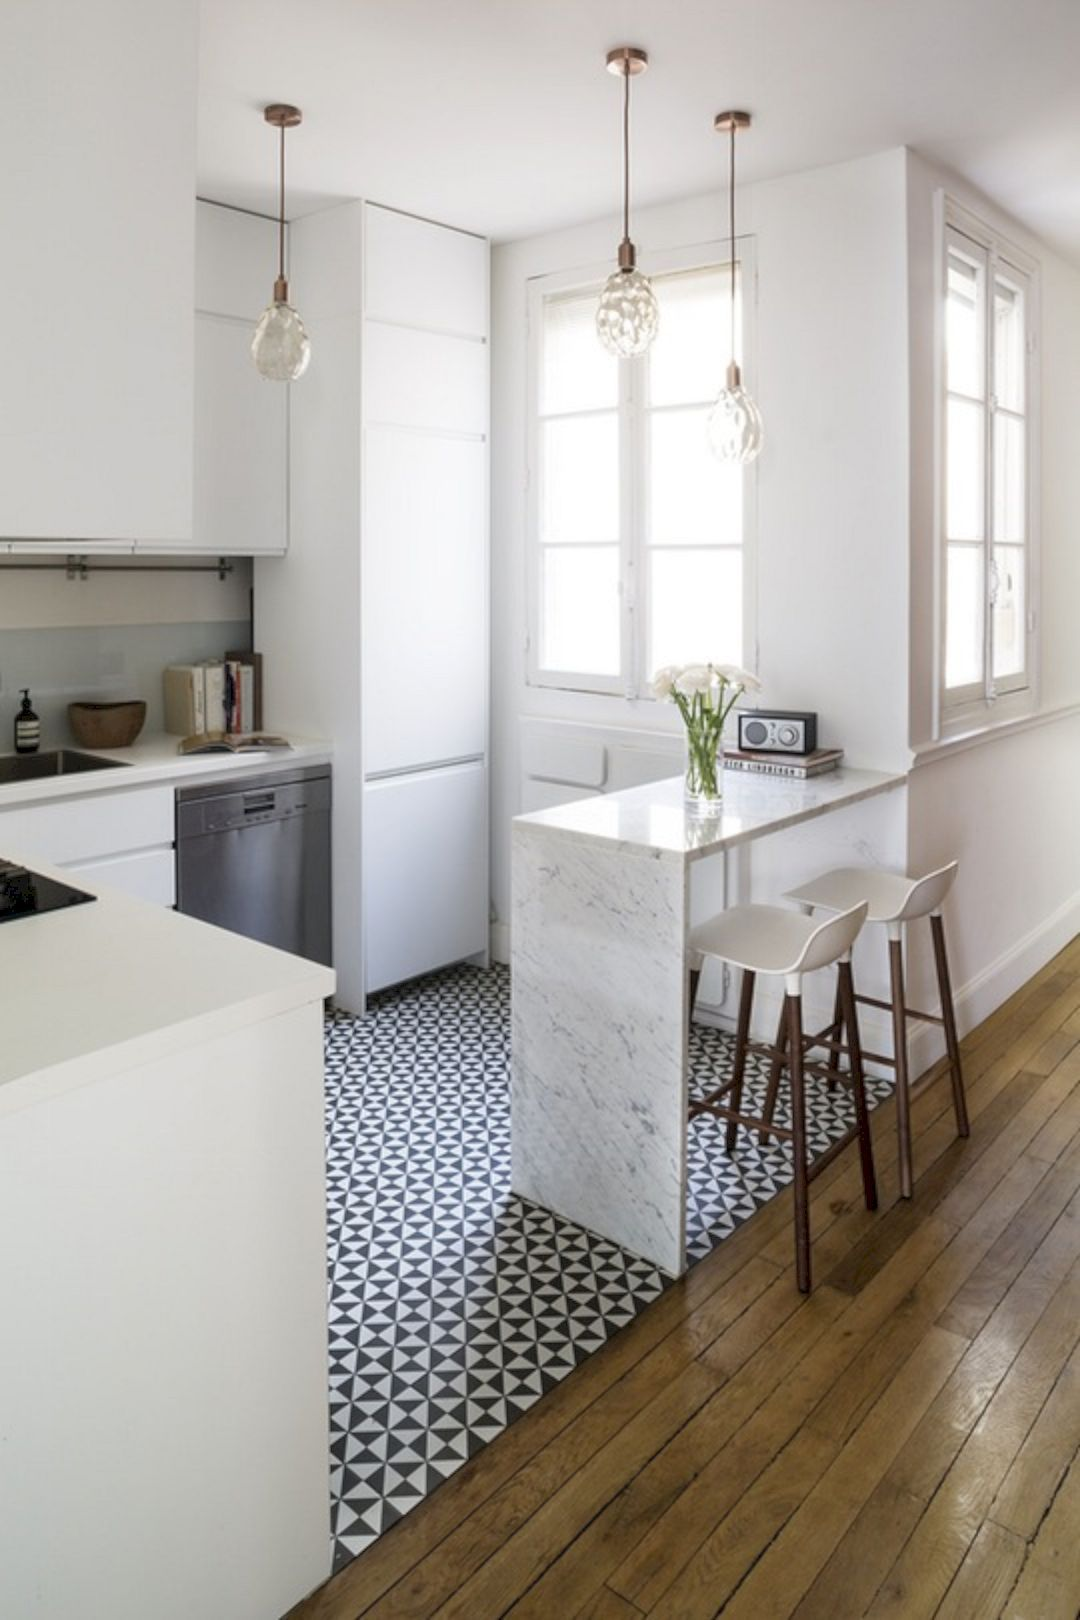 Ordinaire What Is It About Paris Homes That Feel So Chic And Elegant? This Apartment  In A Classic Haussmannian Building In Paris Is Both Those Things.